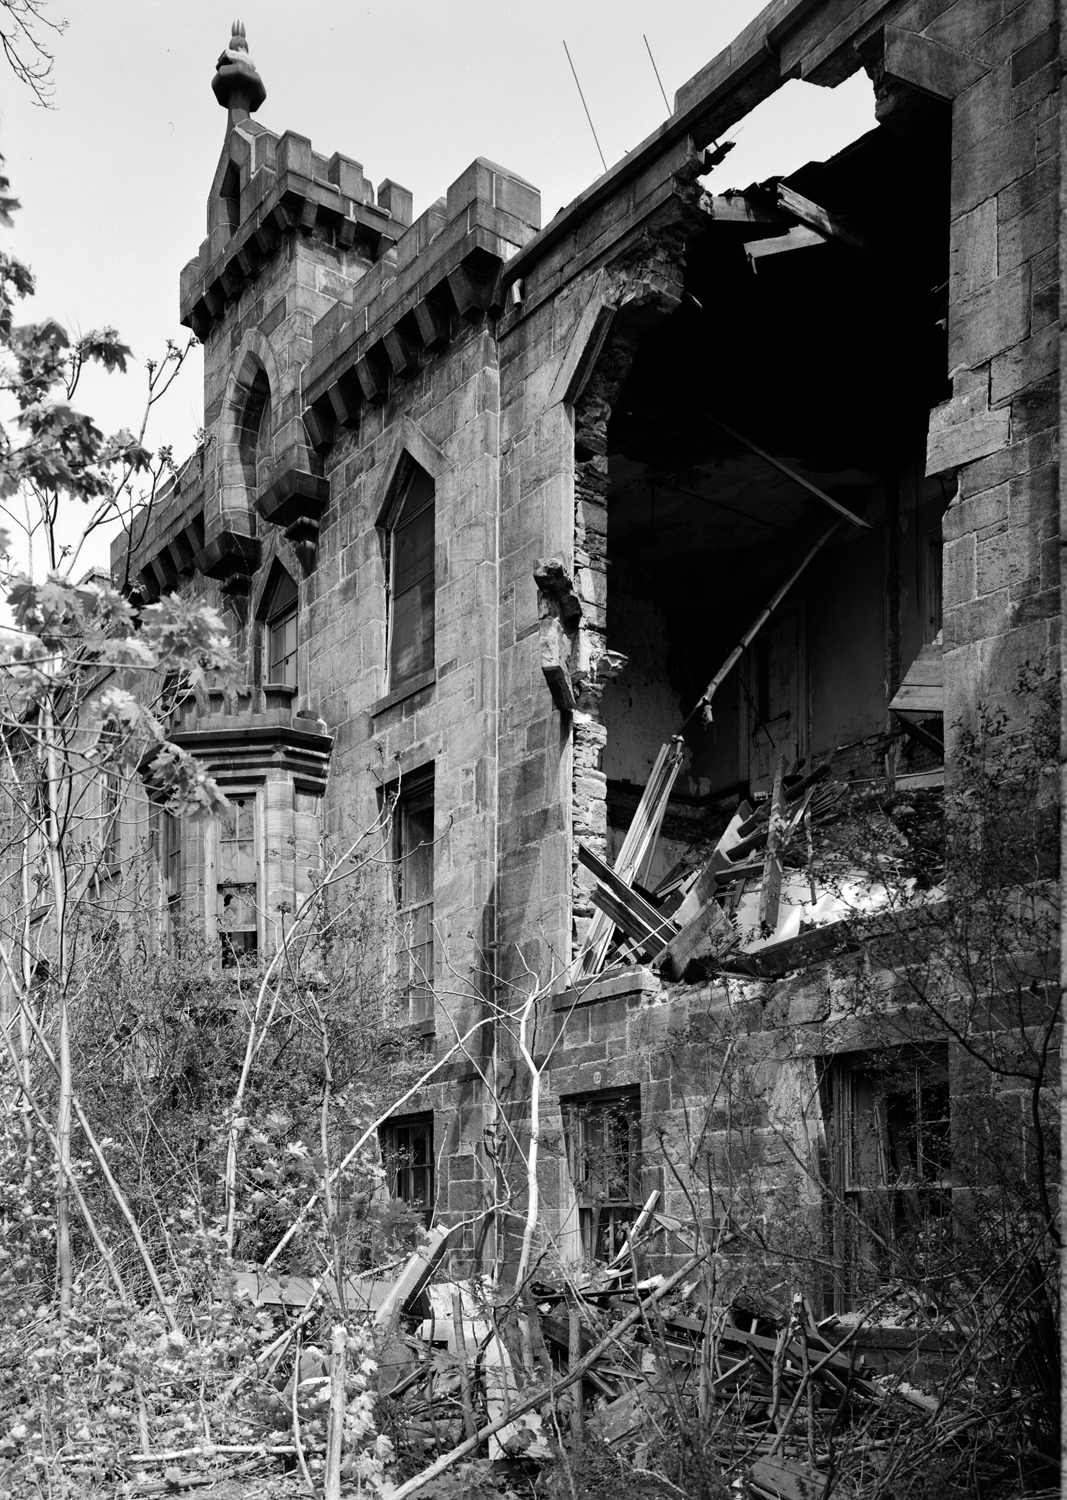 West facade showing partial collapse of wall, Library of Congress, 1983